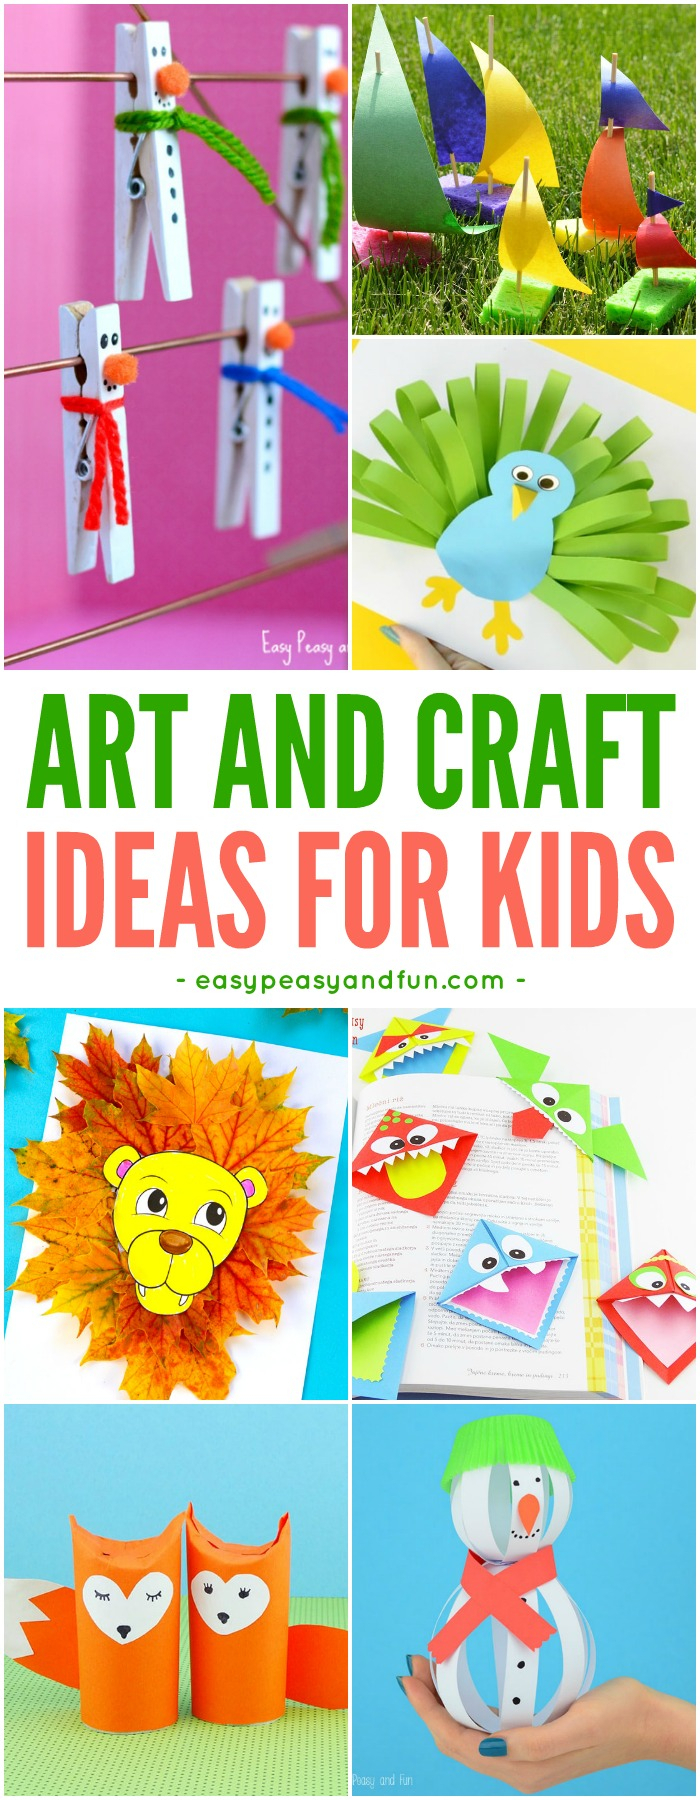 10 Unique Ideas For Crafts For Kids crafts for kids tons of art and craft ideas for kids to make 1